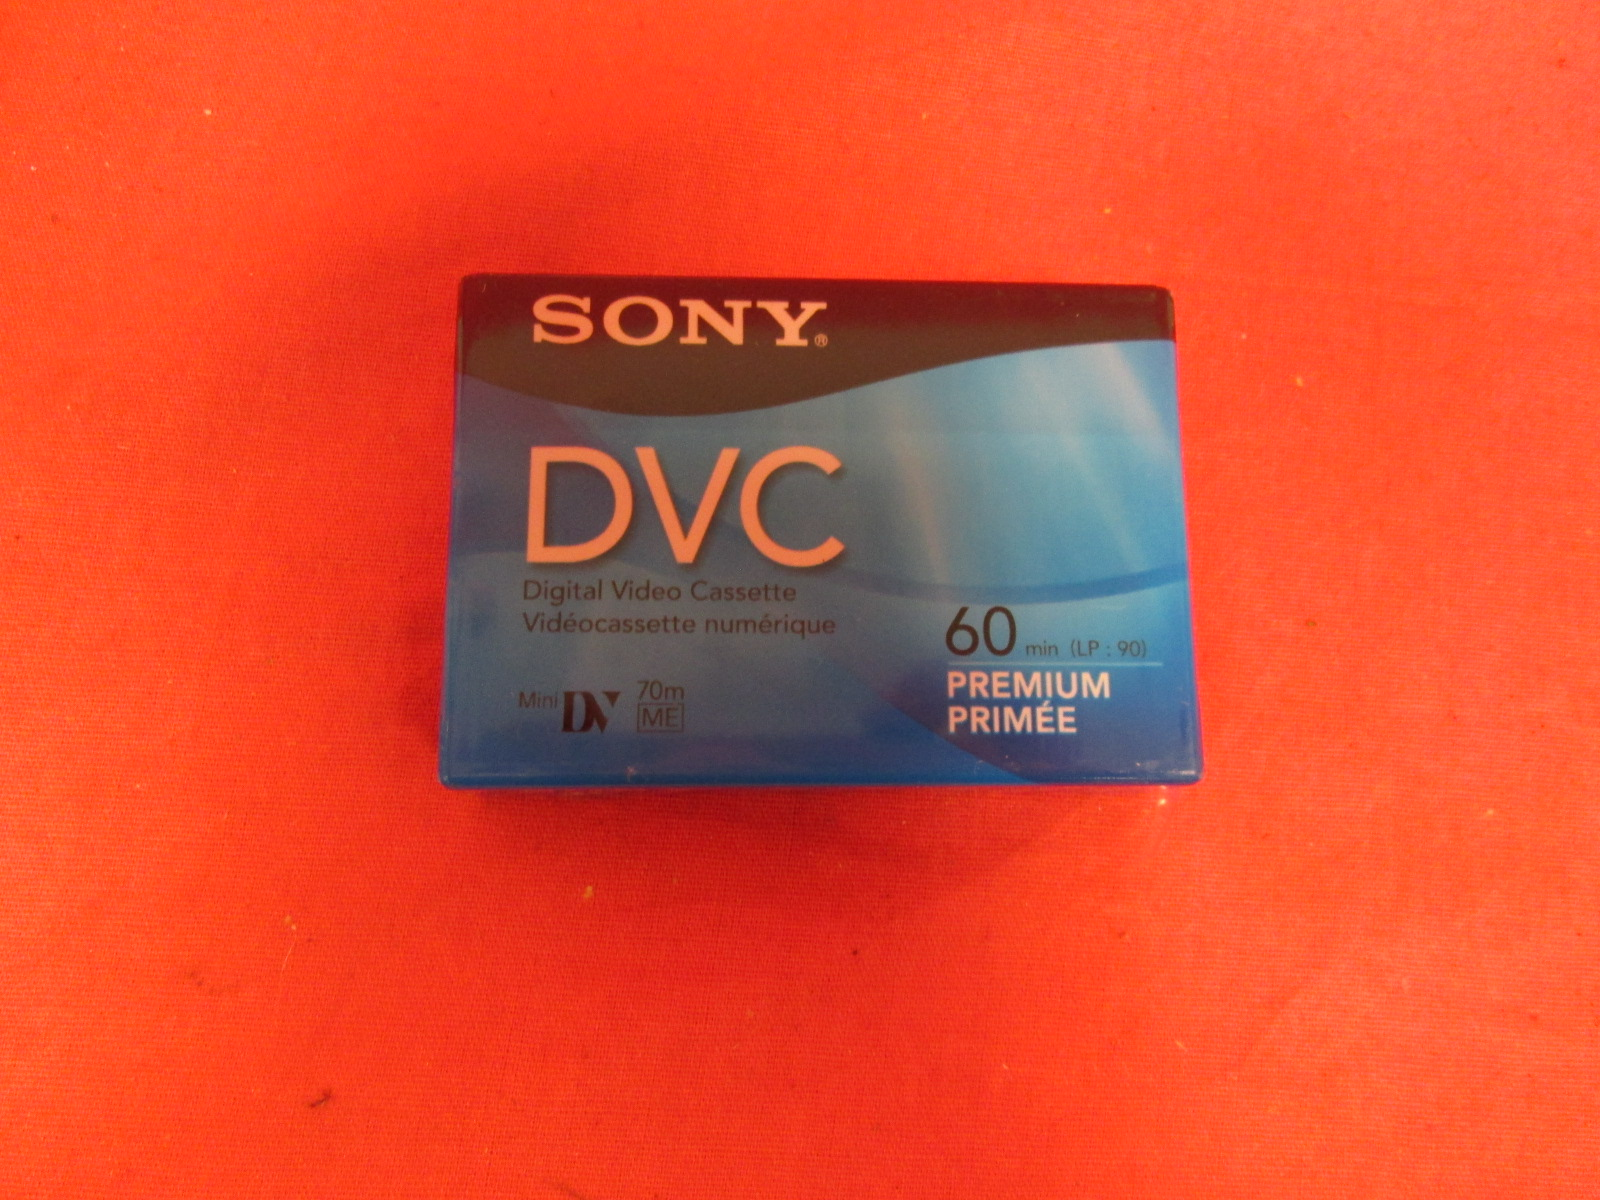 Sony 60 Minute DVC Premium Chipless Single